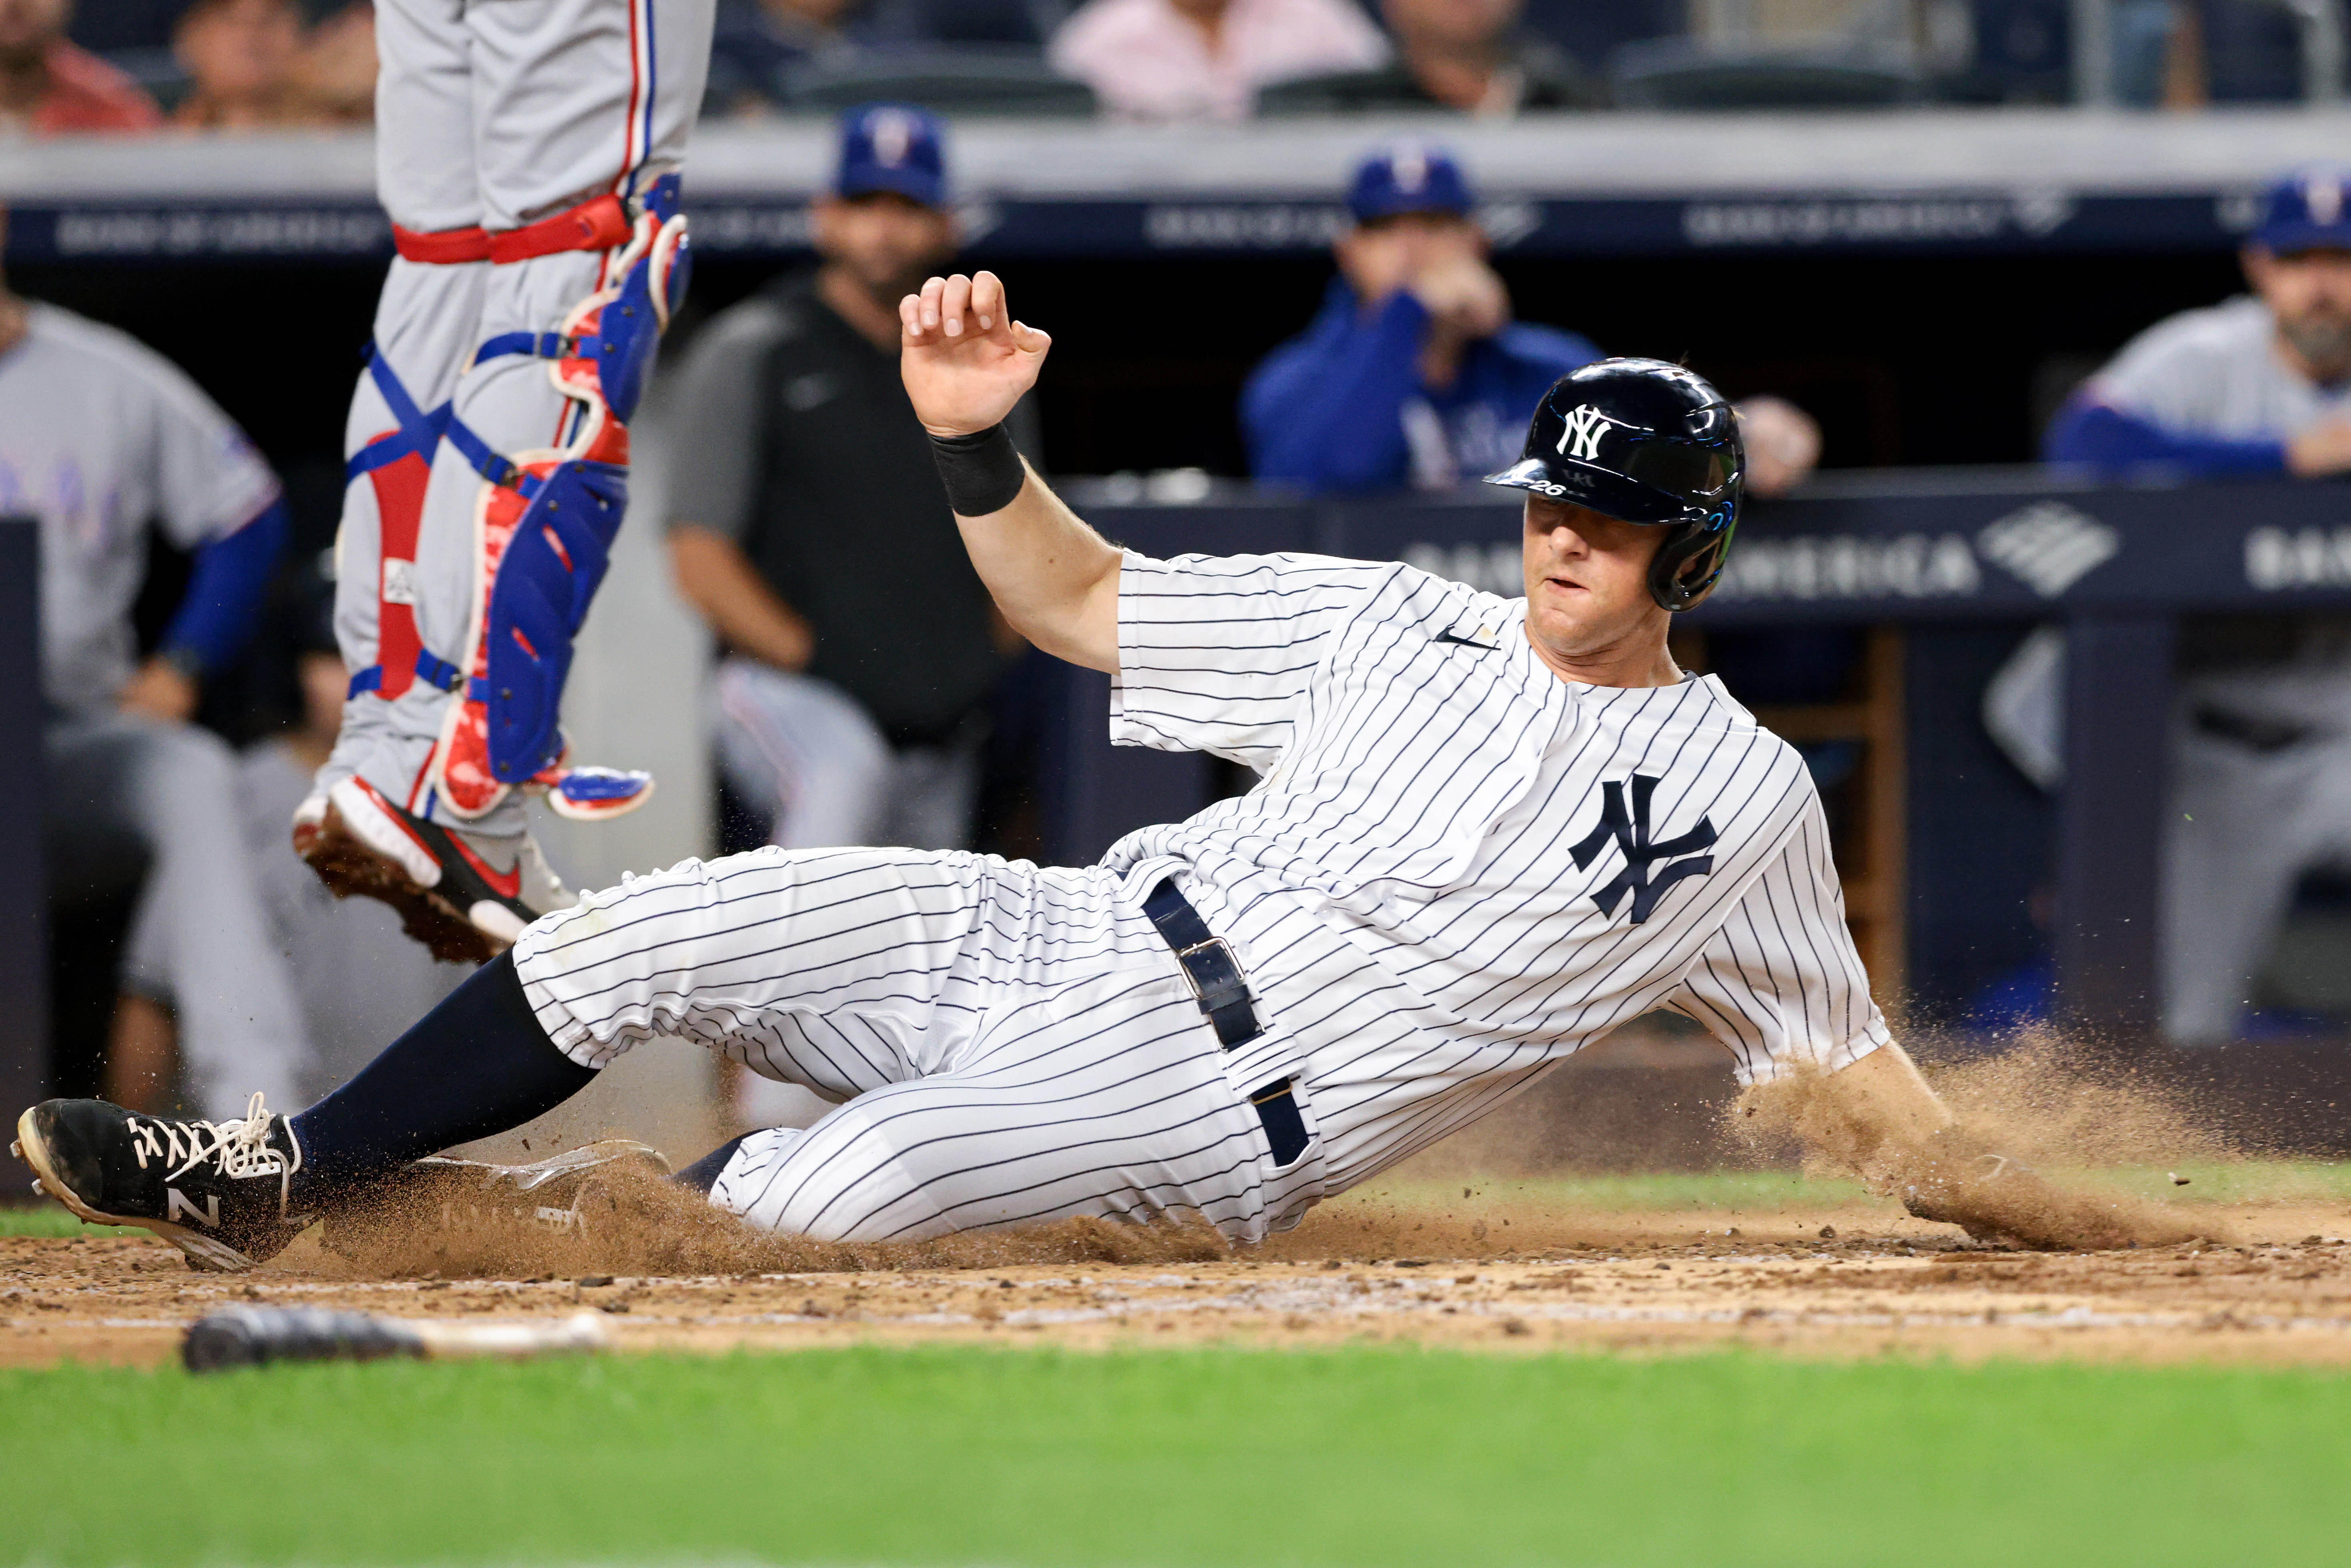 Sep 20, 2021; Bronx, New York, USA; New York Yankees second baseman DJ LeMahieu (26) scores on a RBI single by Aaron Judge (not pictured) against the Texas Rangers during the third inning at Yankee Stadium. Mandatory Credit: Vincent Carchietta-USA TODAY Sports